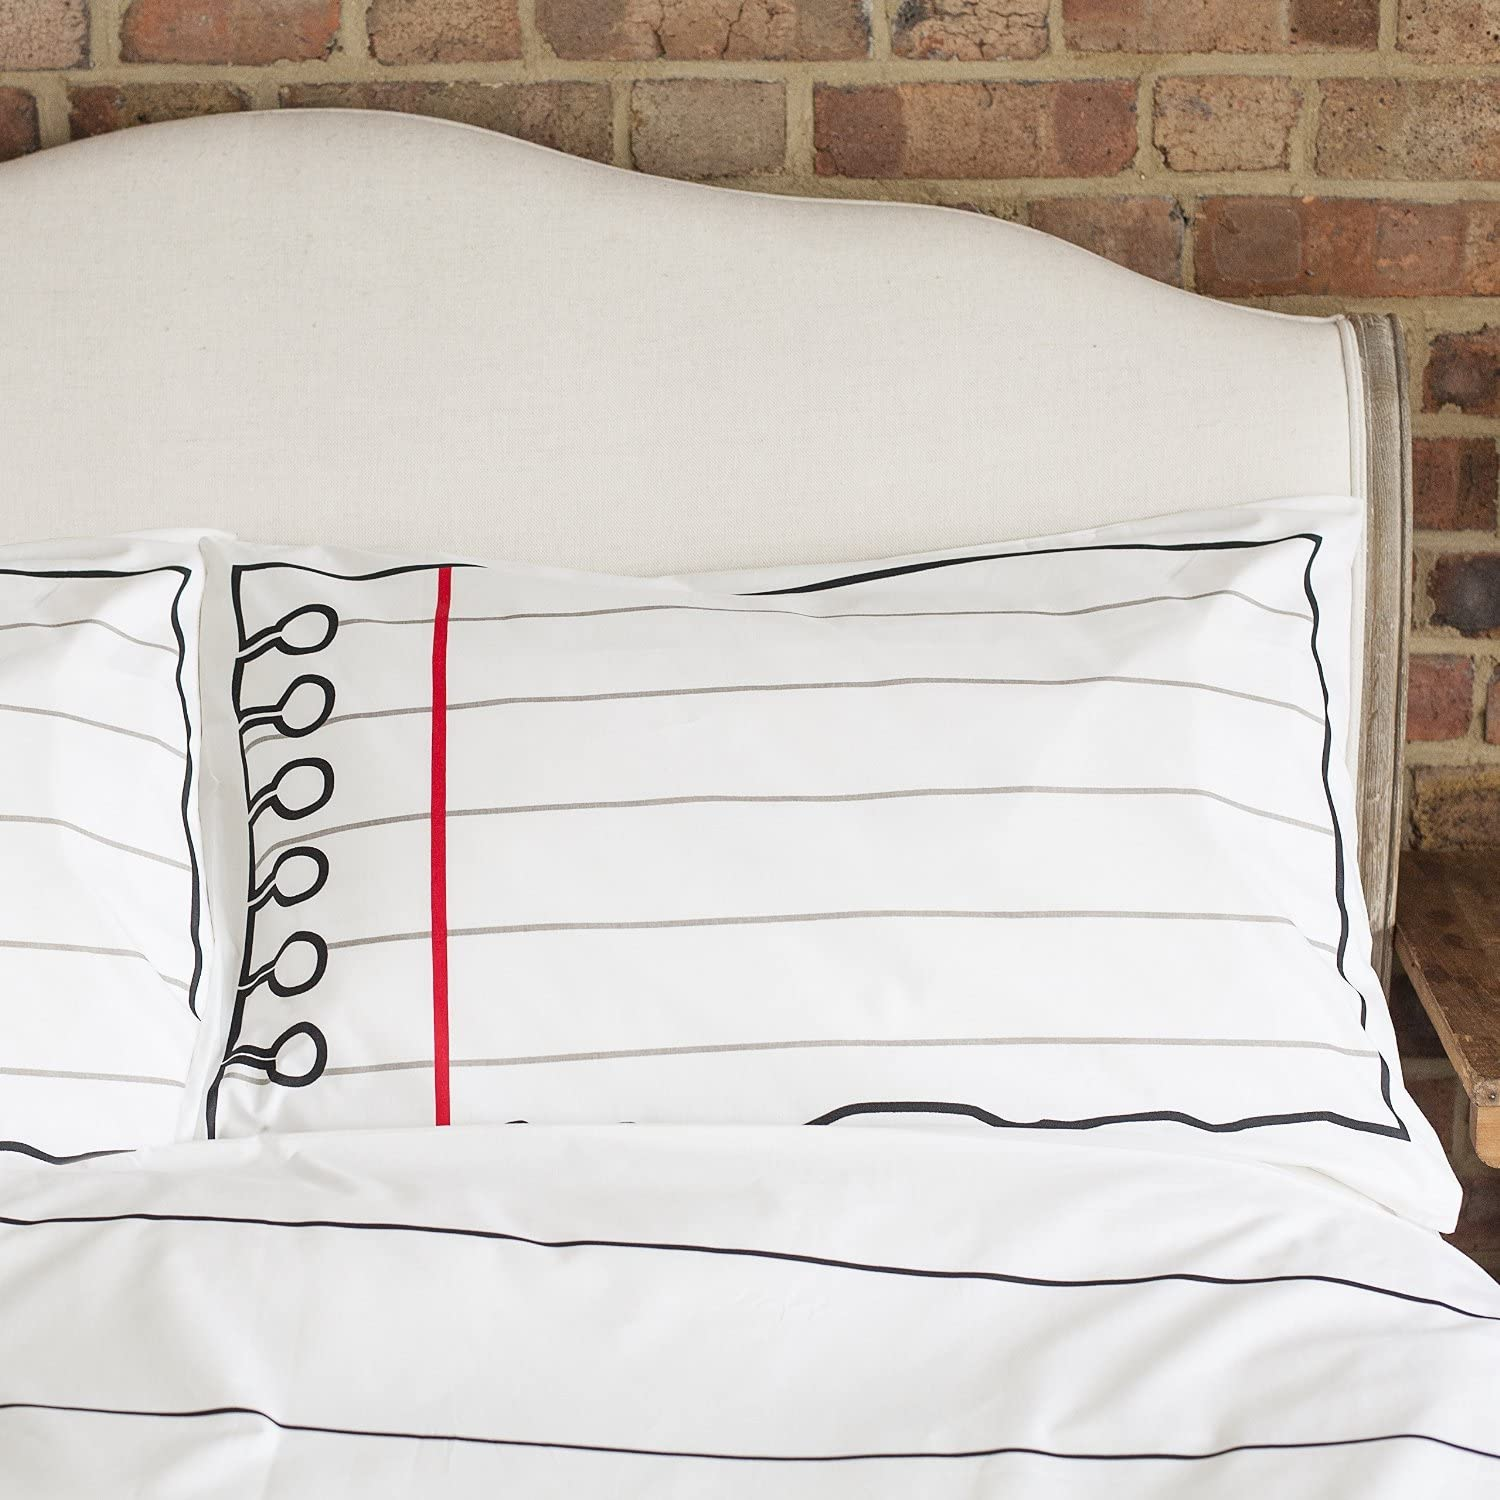 eatsleepdoodle Color /& Learn US Map Pillowcase Doodle Pillow Case for Children Kids Coloring US Map Pillowcase with Washable Fabric Markers